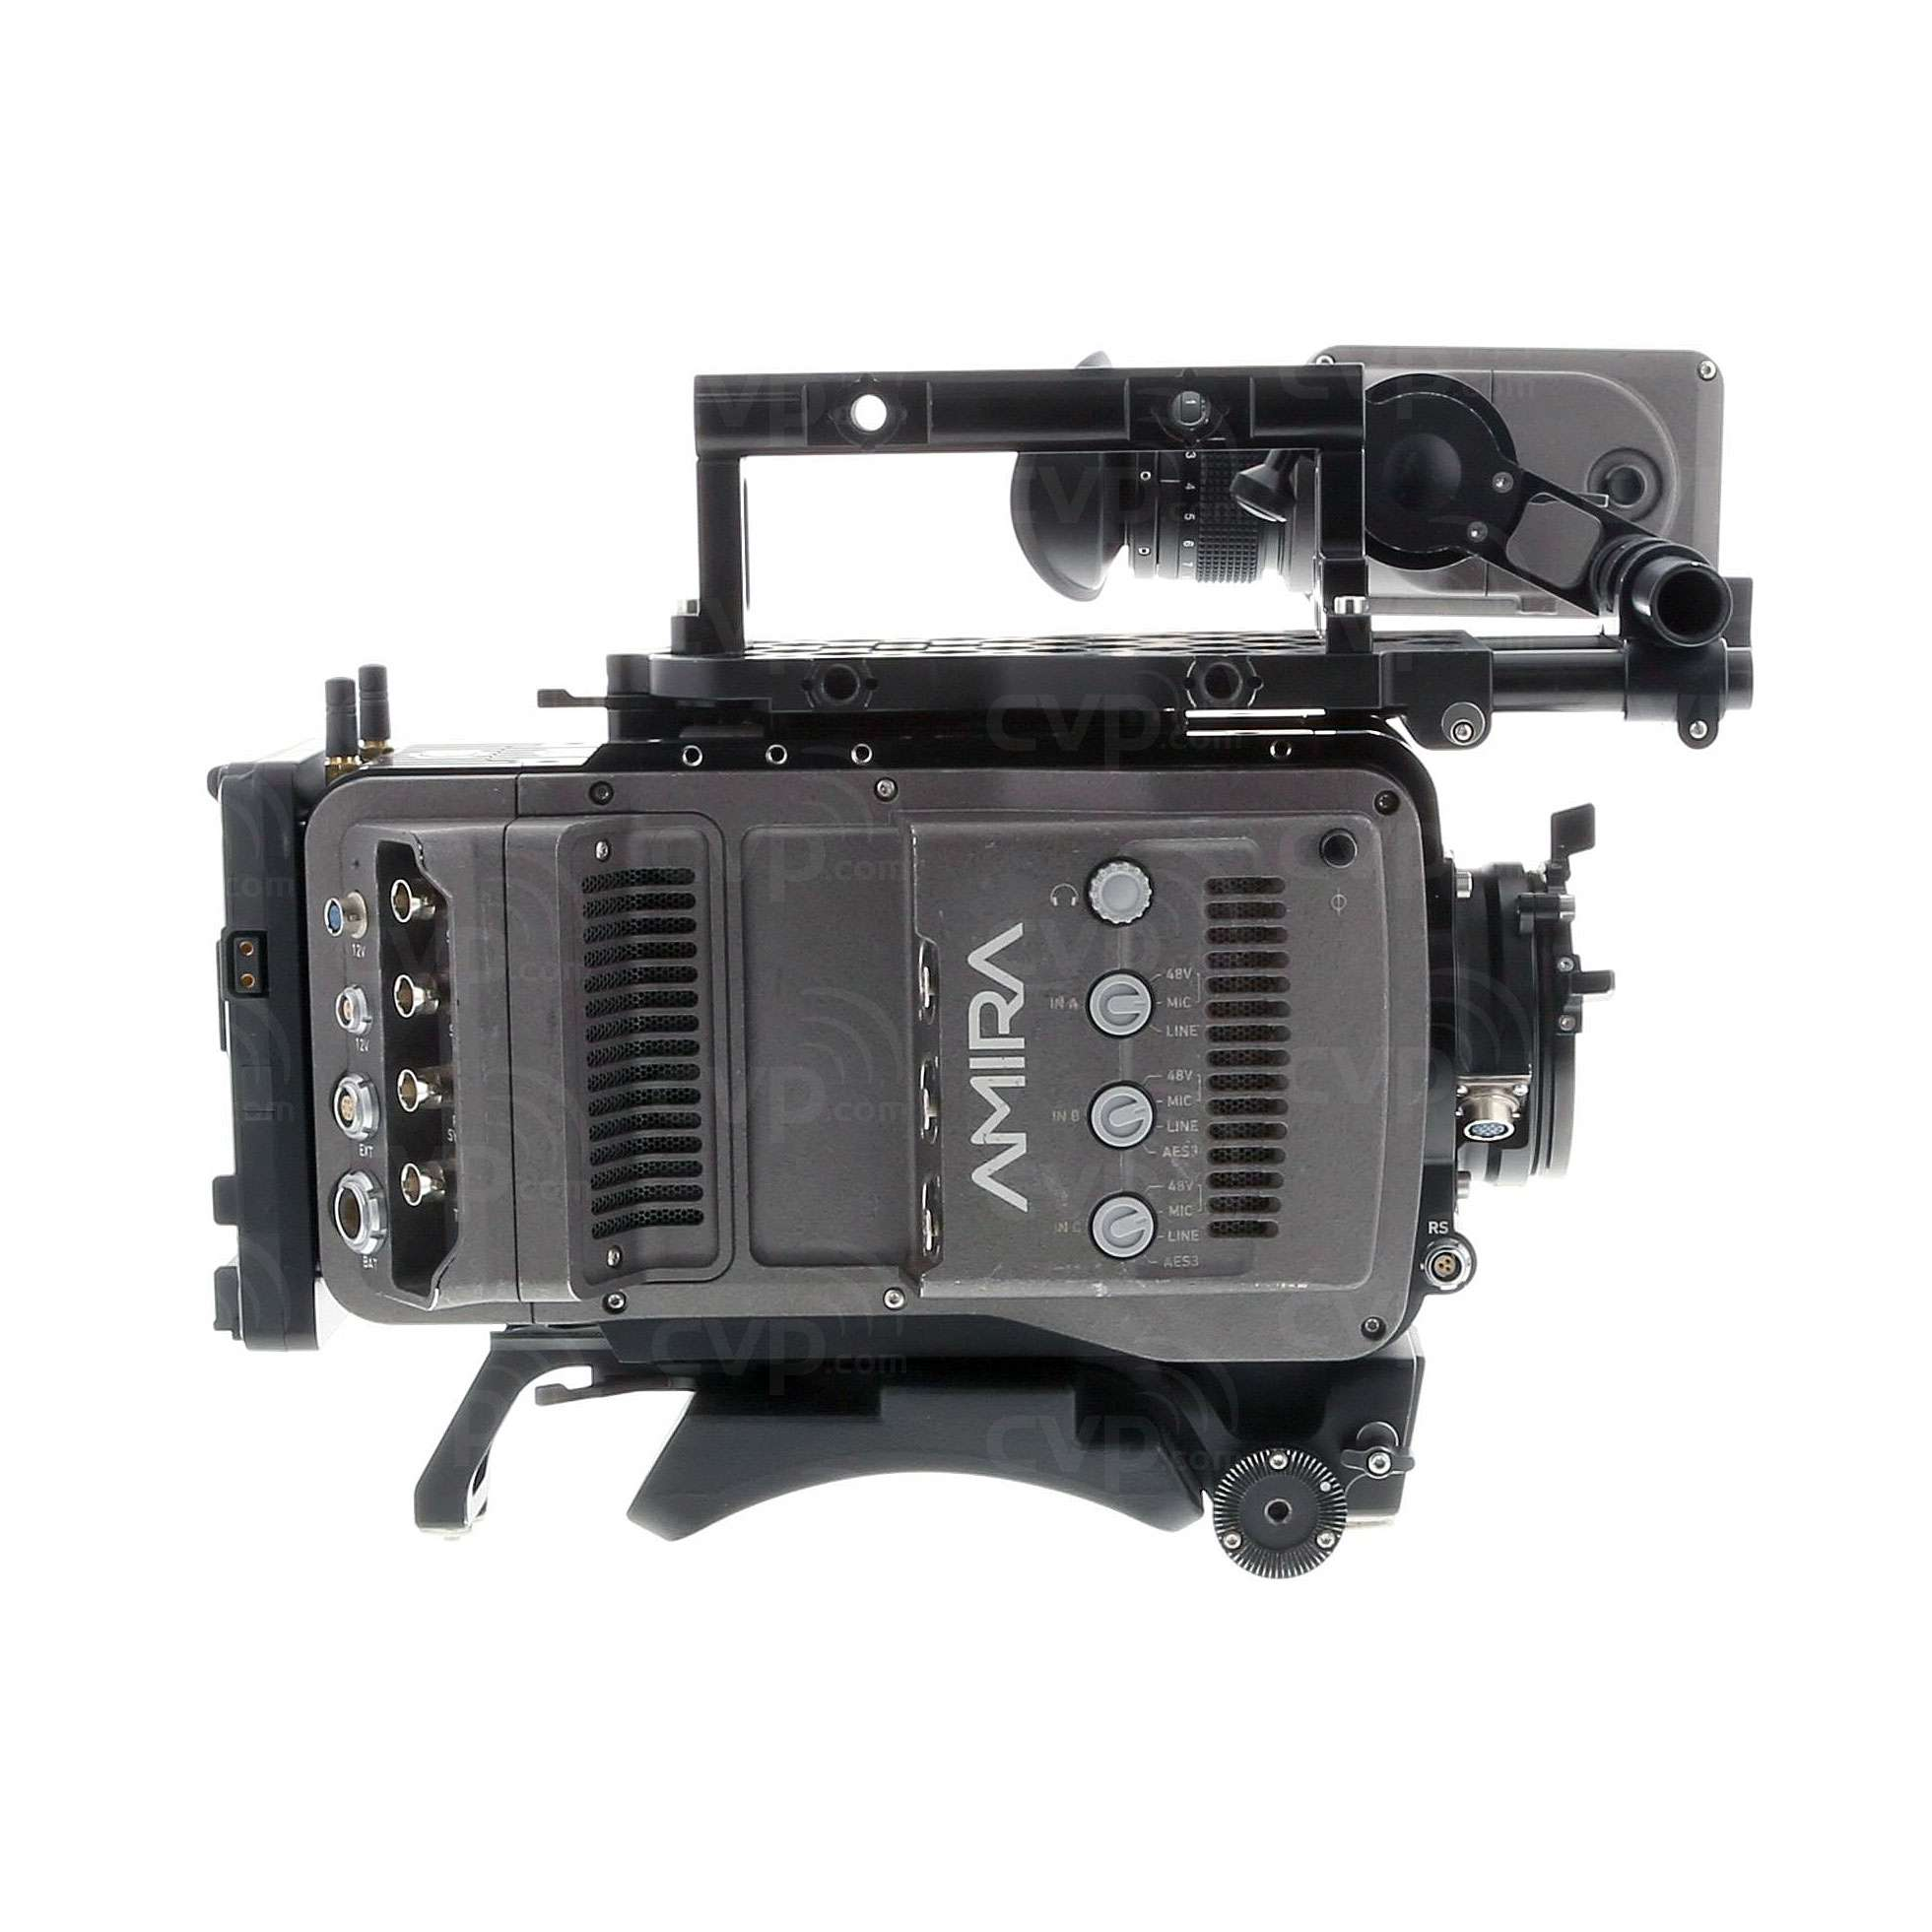 Pre-Owned ARRI AMIRA 200fps Documentary Style Pick up and Shoot